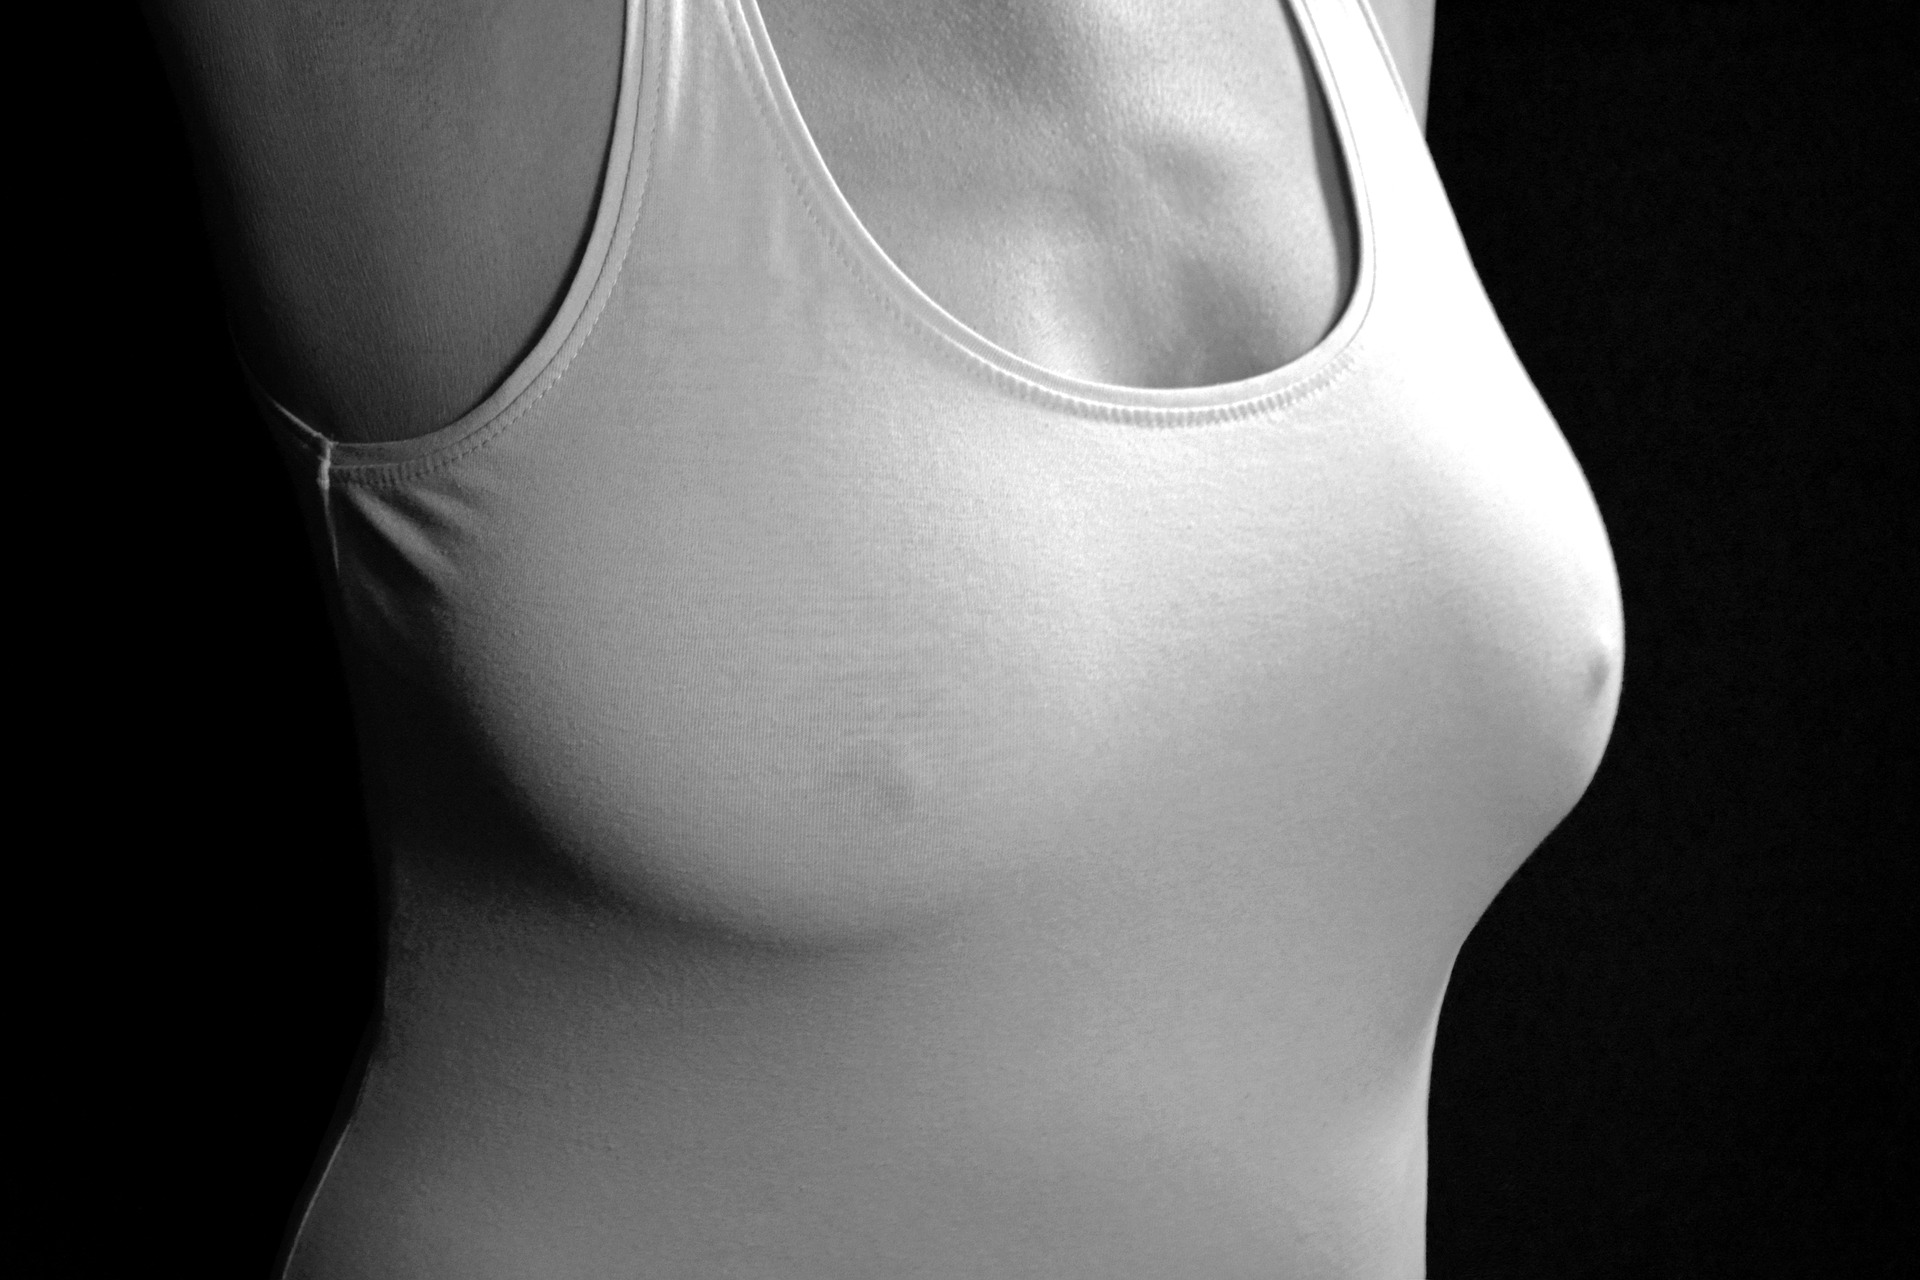 facts about breasts